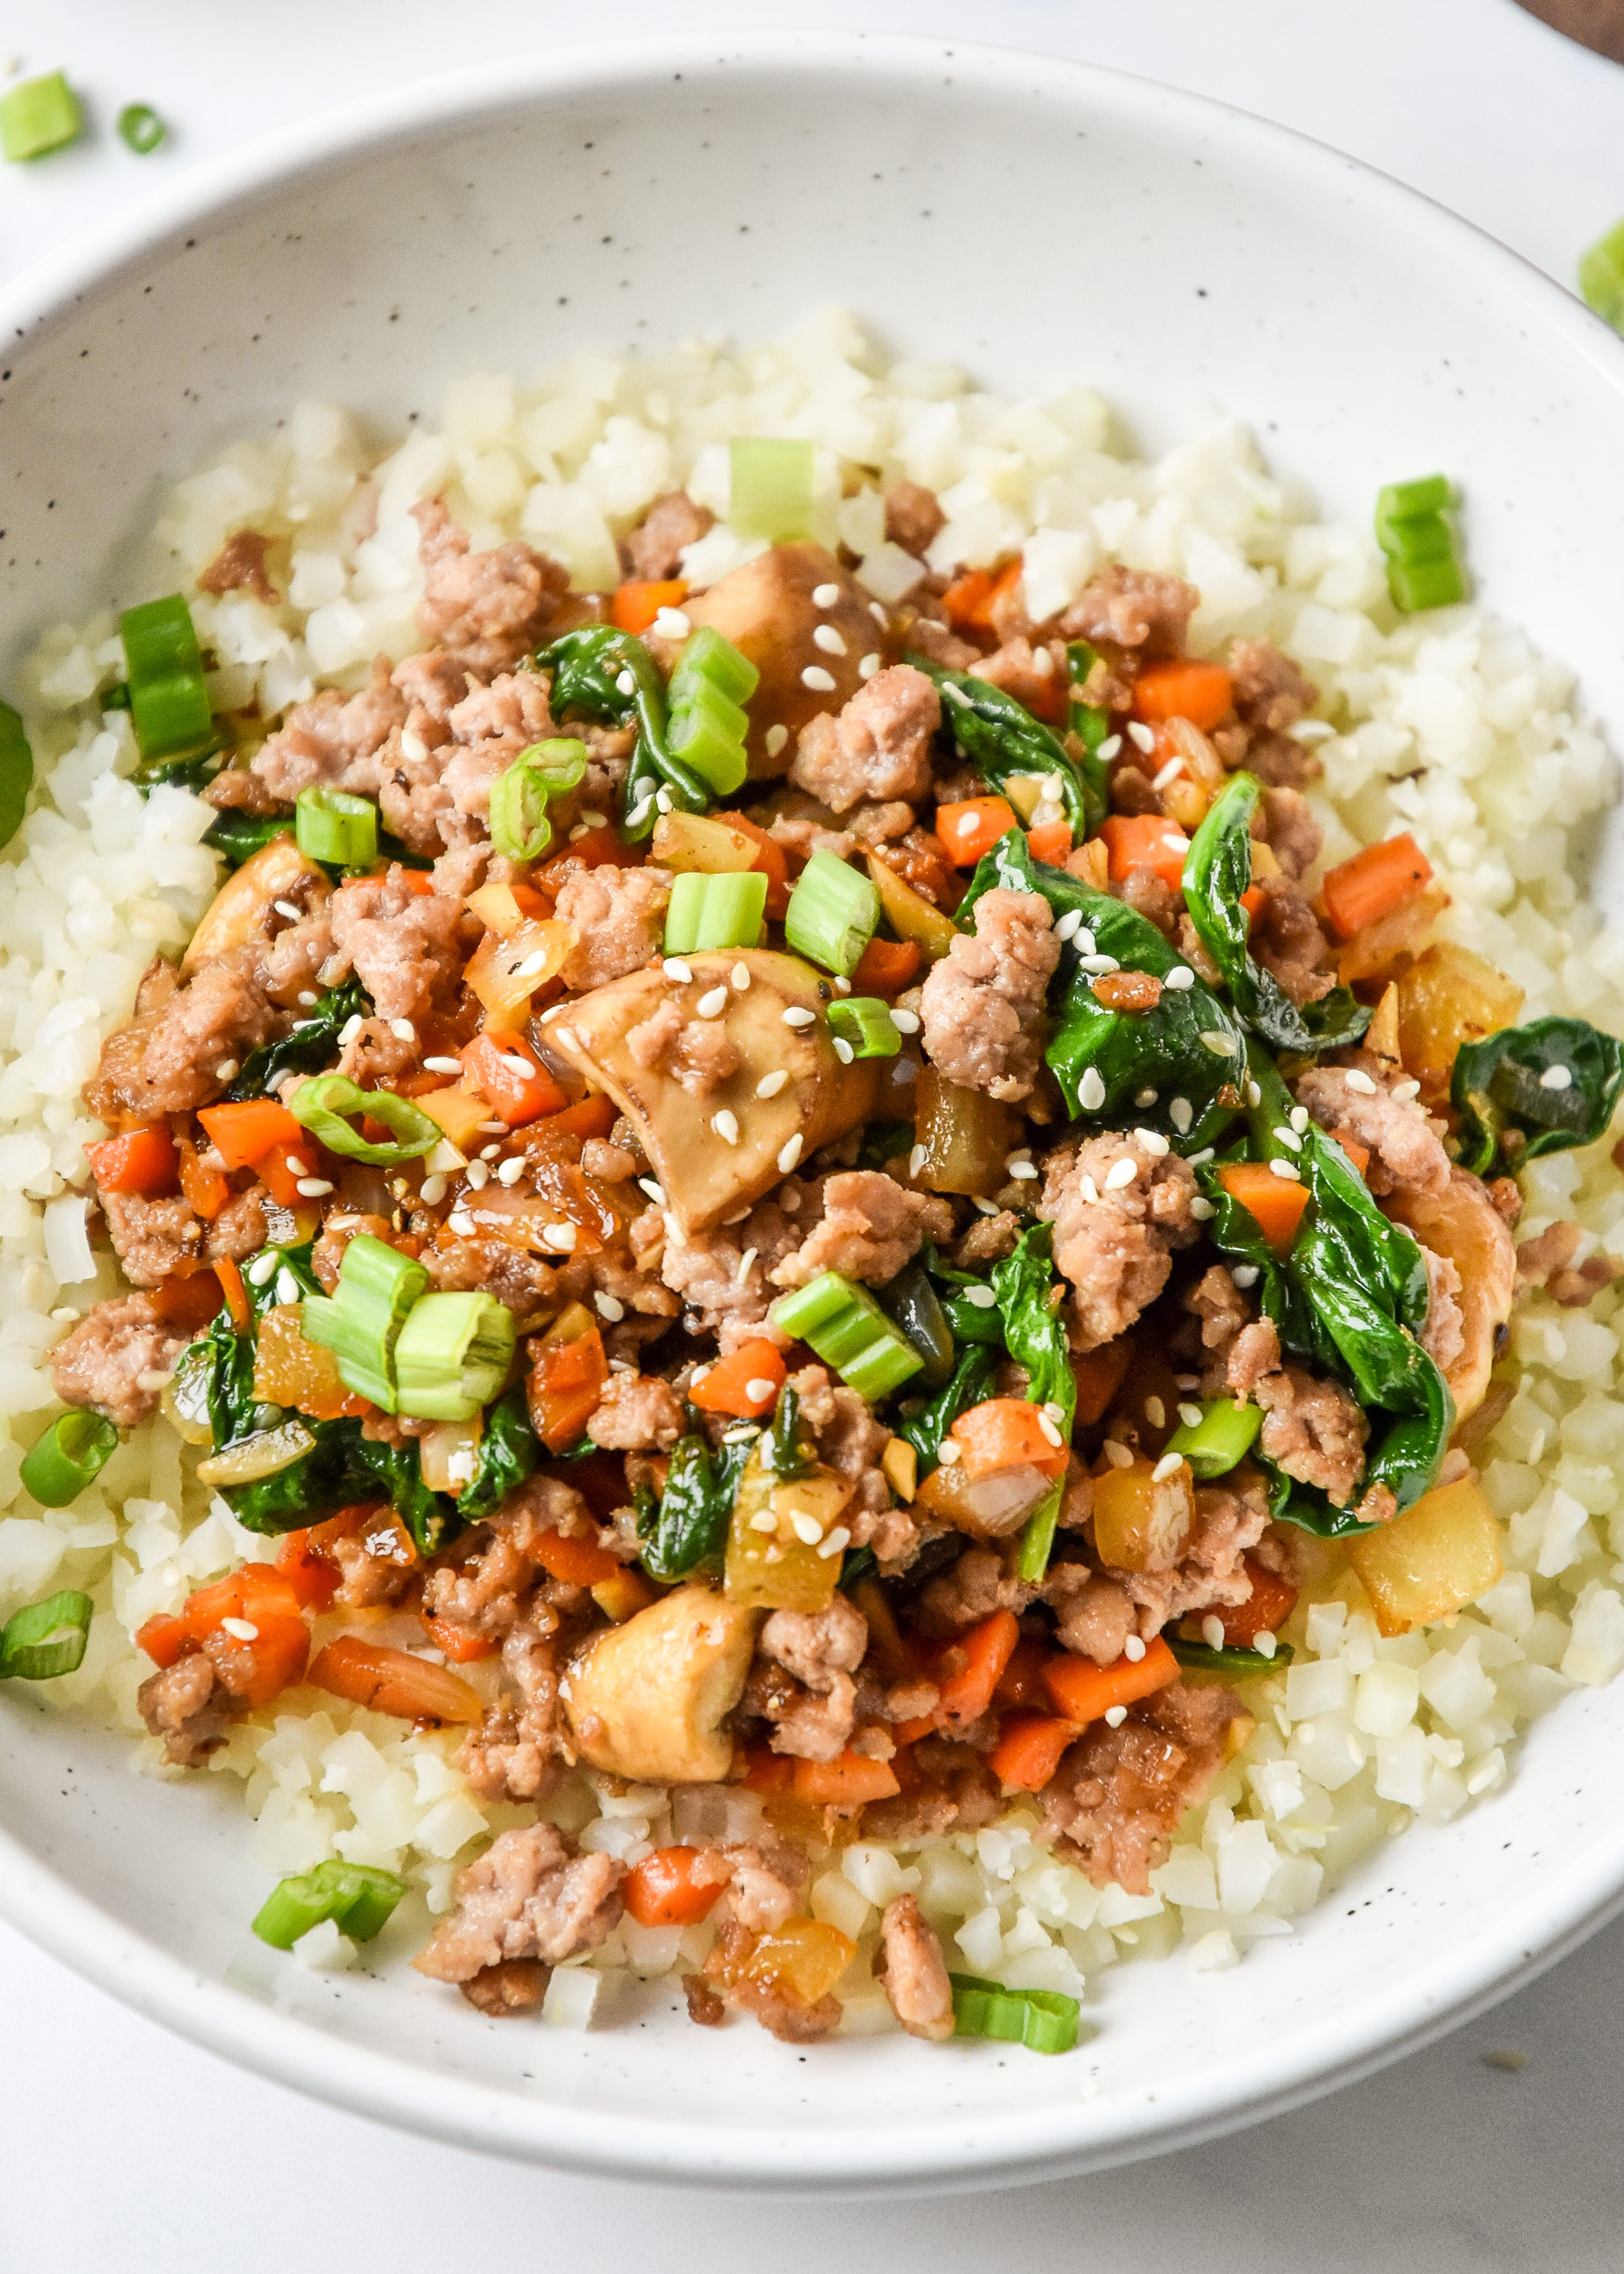 one serving vegetable pork bowl close up with cauliflower rice